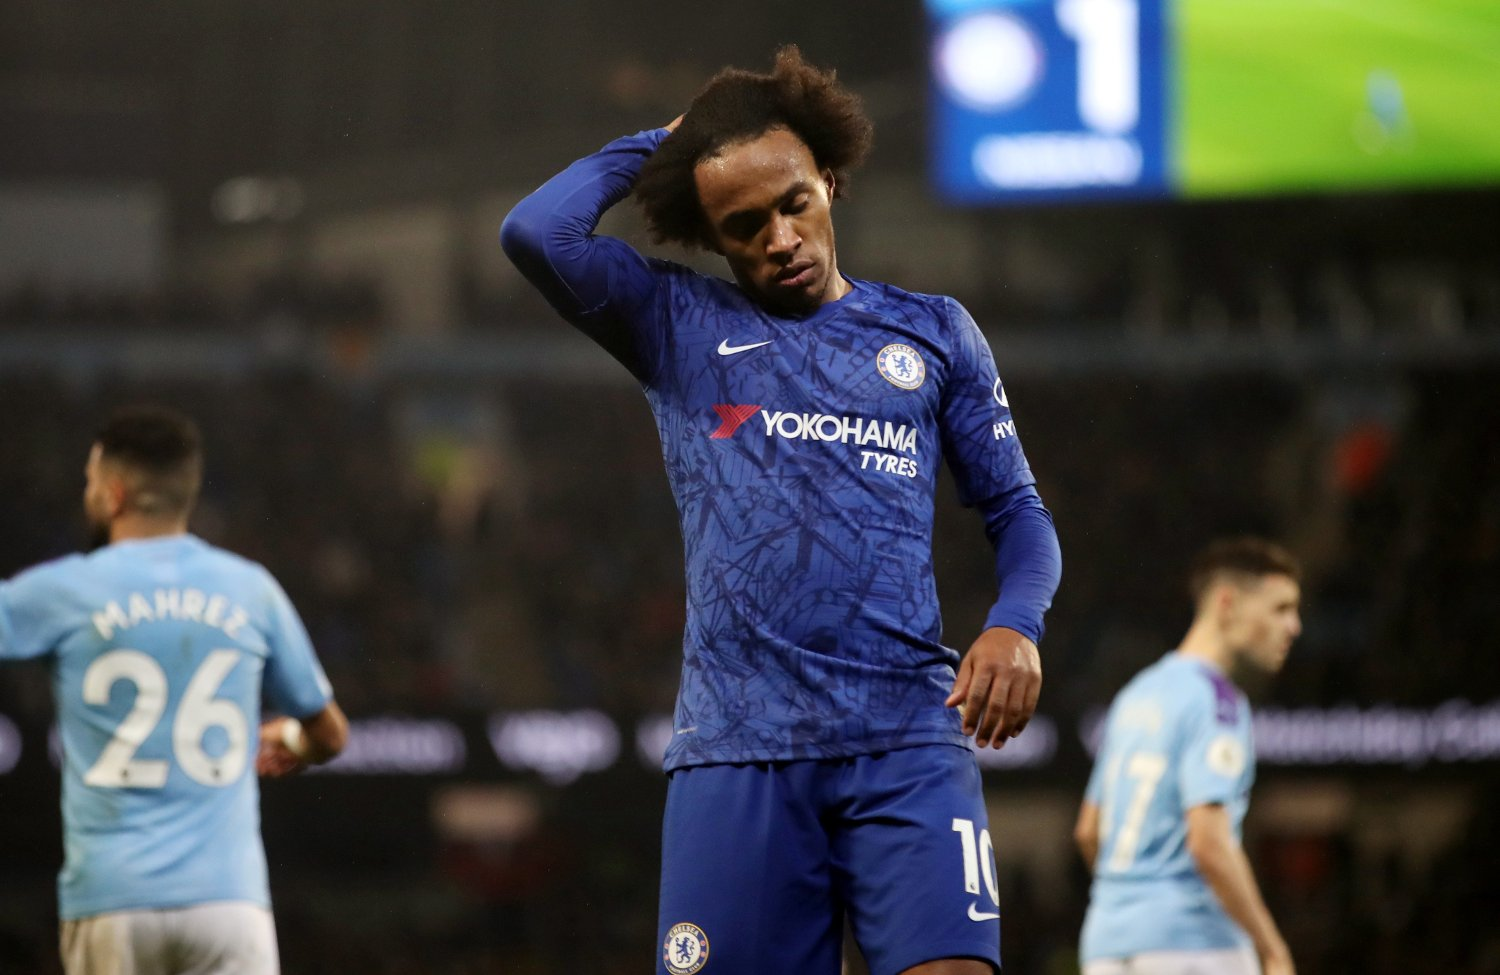 Soccer Football - Premier League - Manchester City v Chelsea - Etihad Stadium, Manchester, Britain - November 23, 2019 Chelsea's Willian reacts Action Images via Reuters/Carl Recine EDITORIAL USE ONLY. No use with unauthorized audio, video, data, fixture lists, club/league logos or